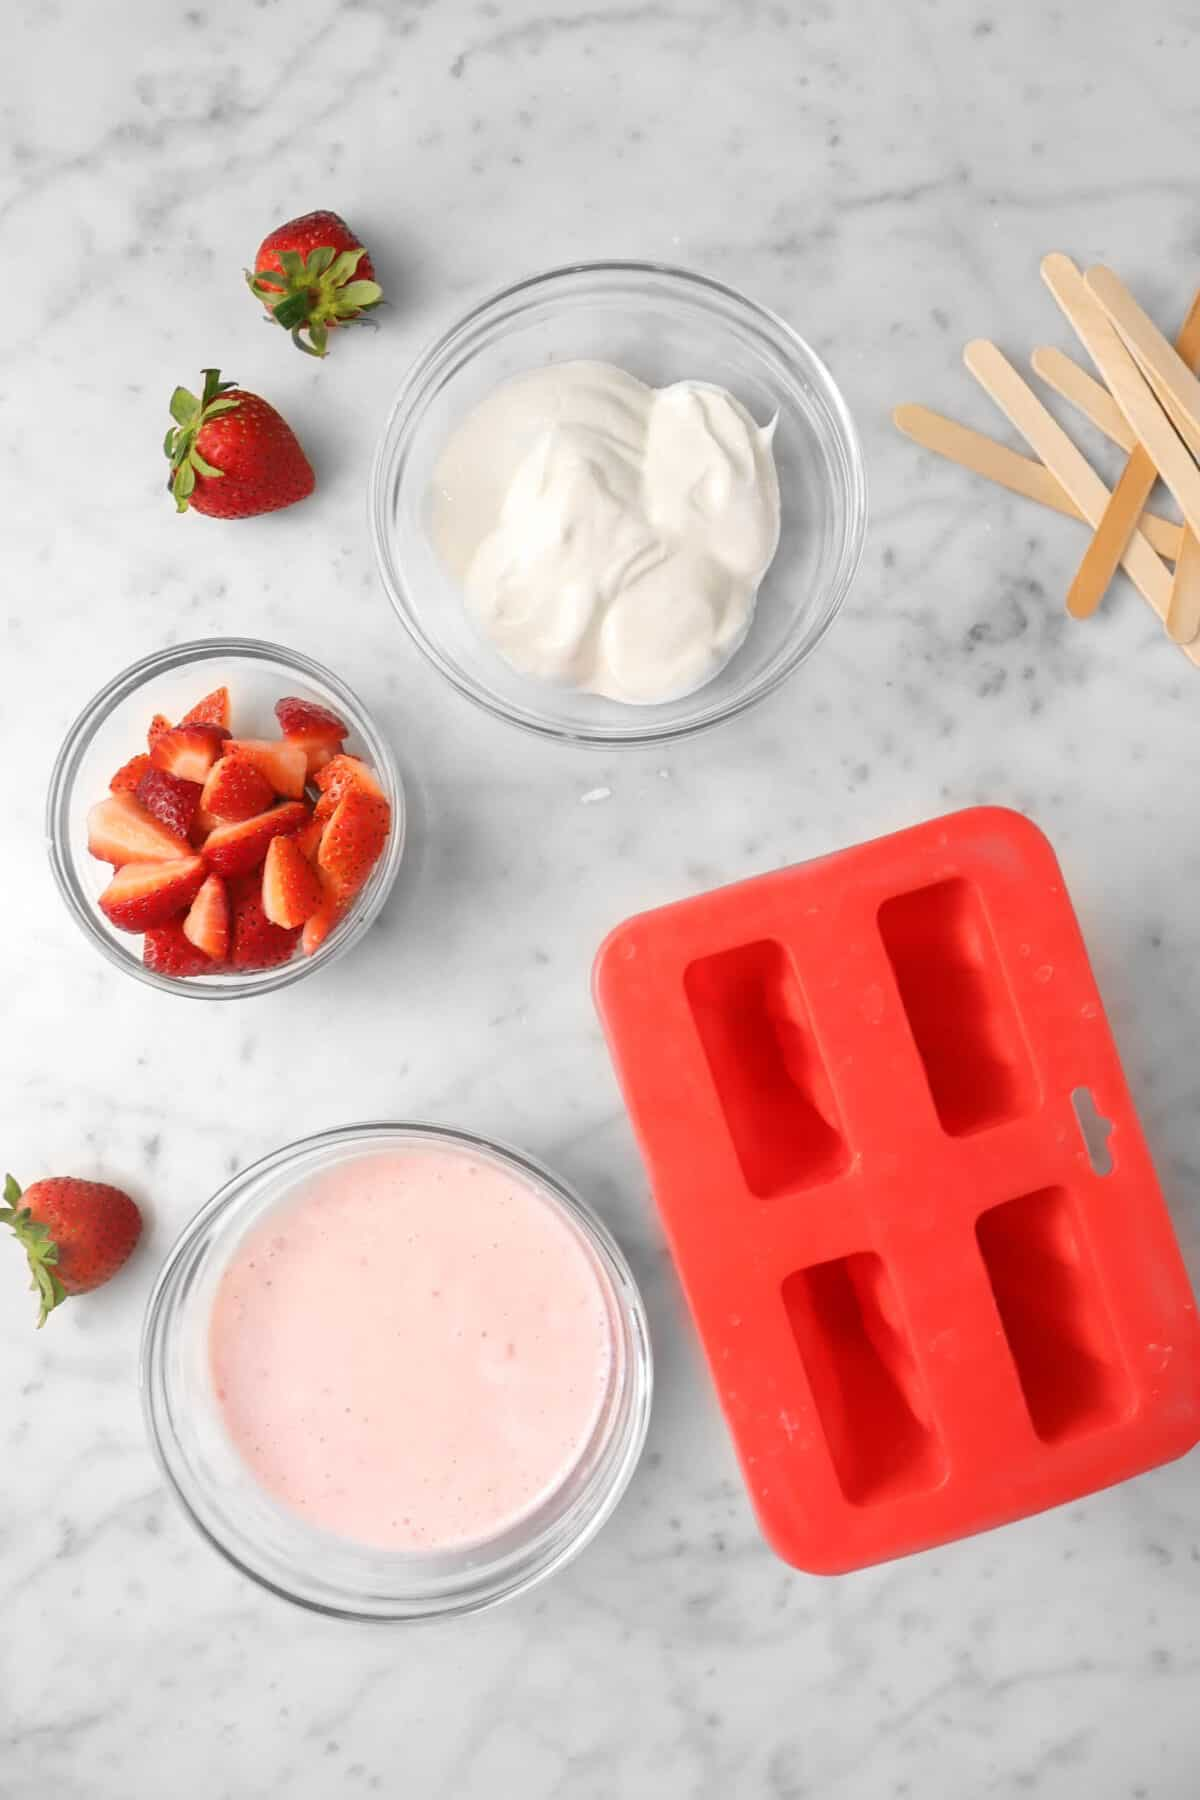 yogurt, chopped strawberries, and strawberry yogurt in glass bowls with popsicle mold